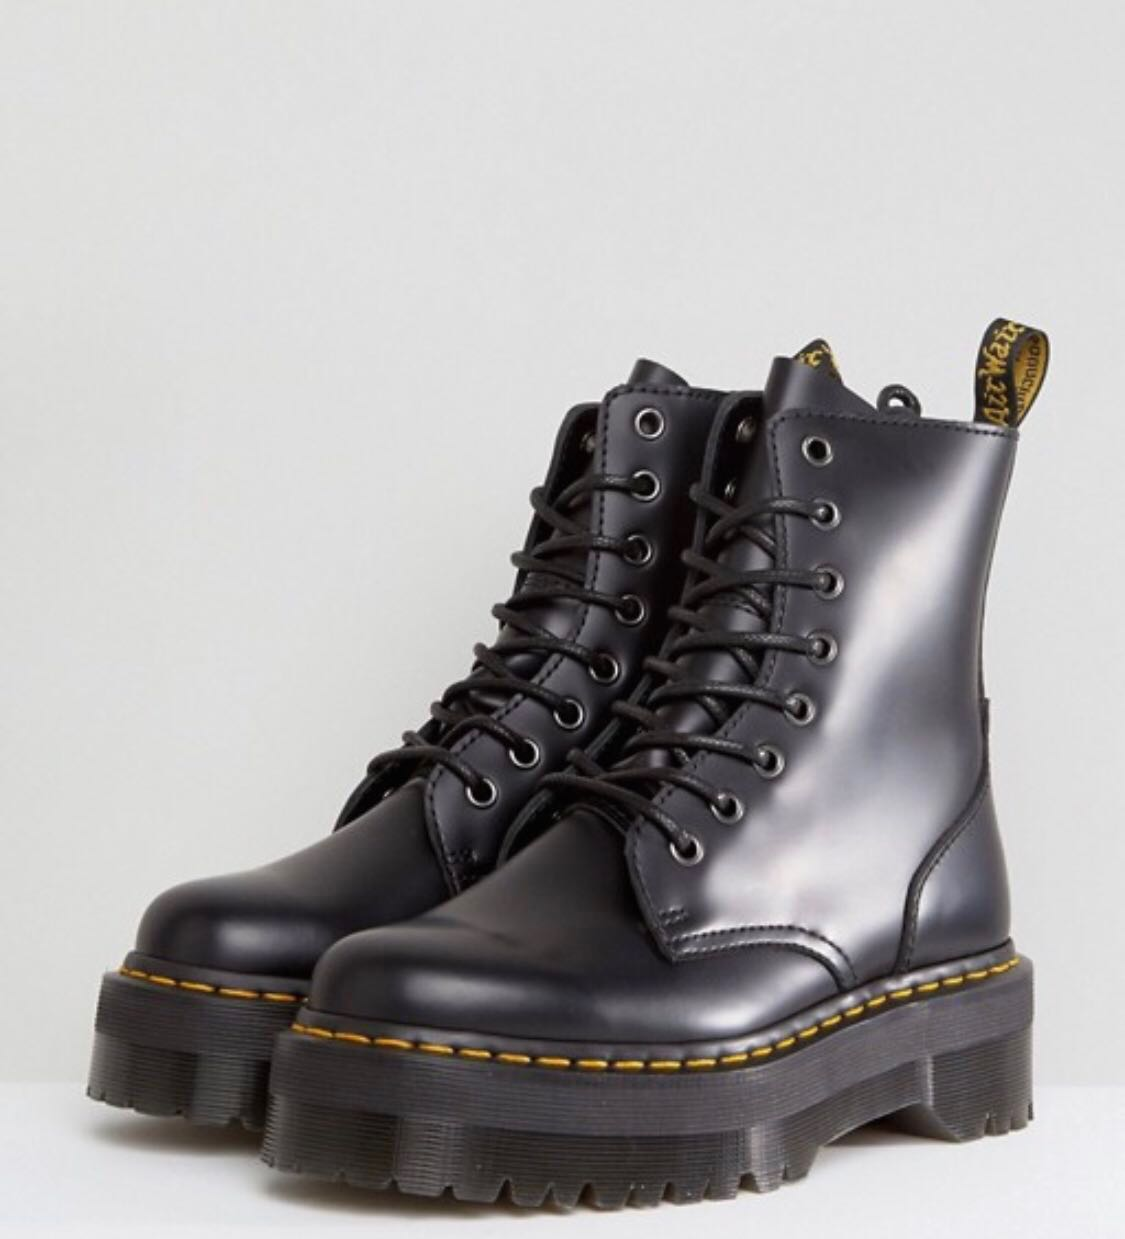 17a5df1b546dc Dr Martens Jadon Boots, Women's Fashion, Shoes, Boots on Carousell